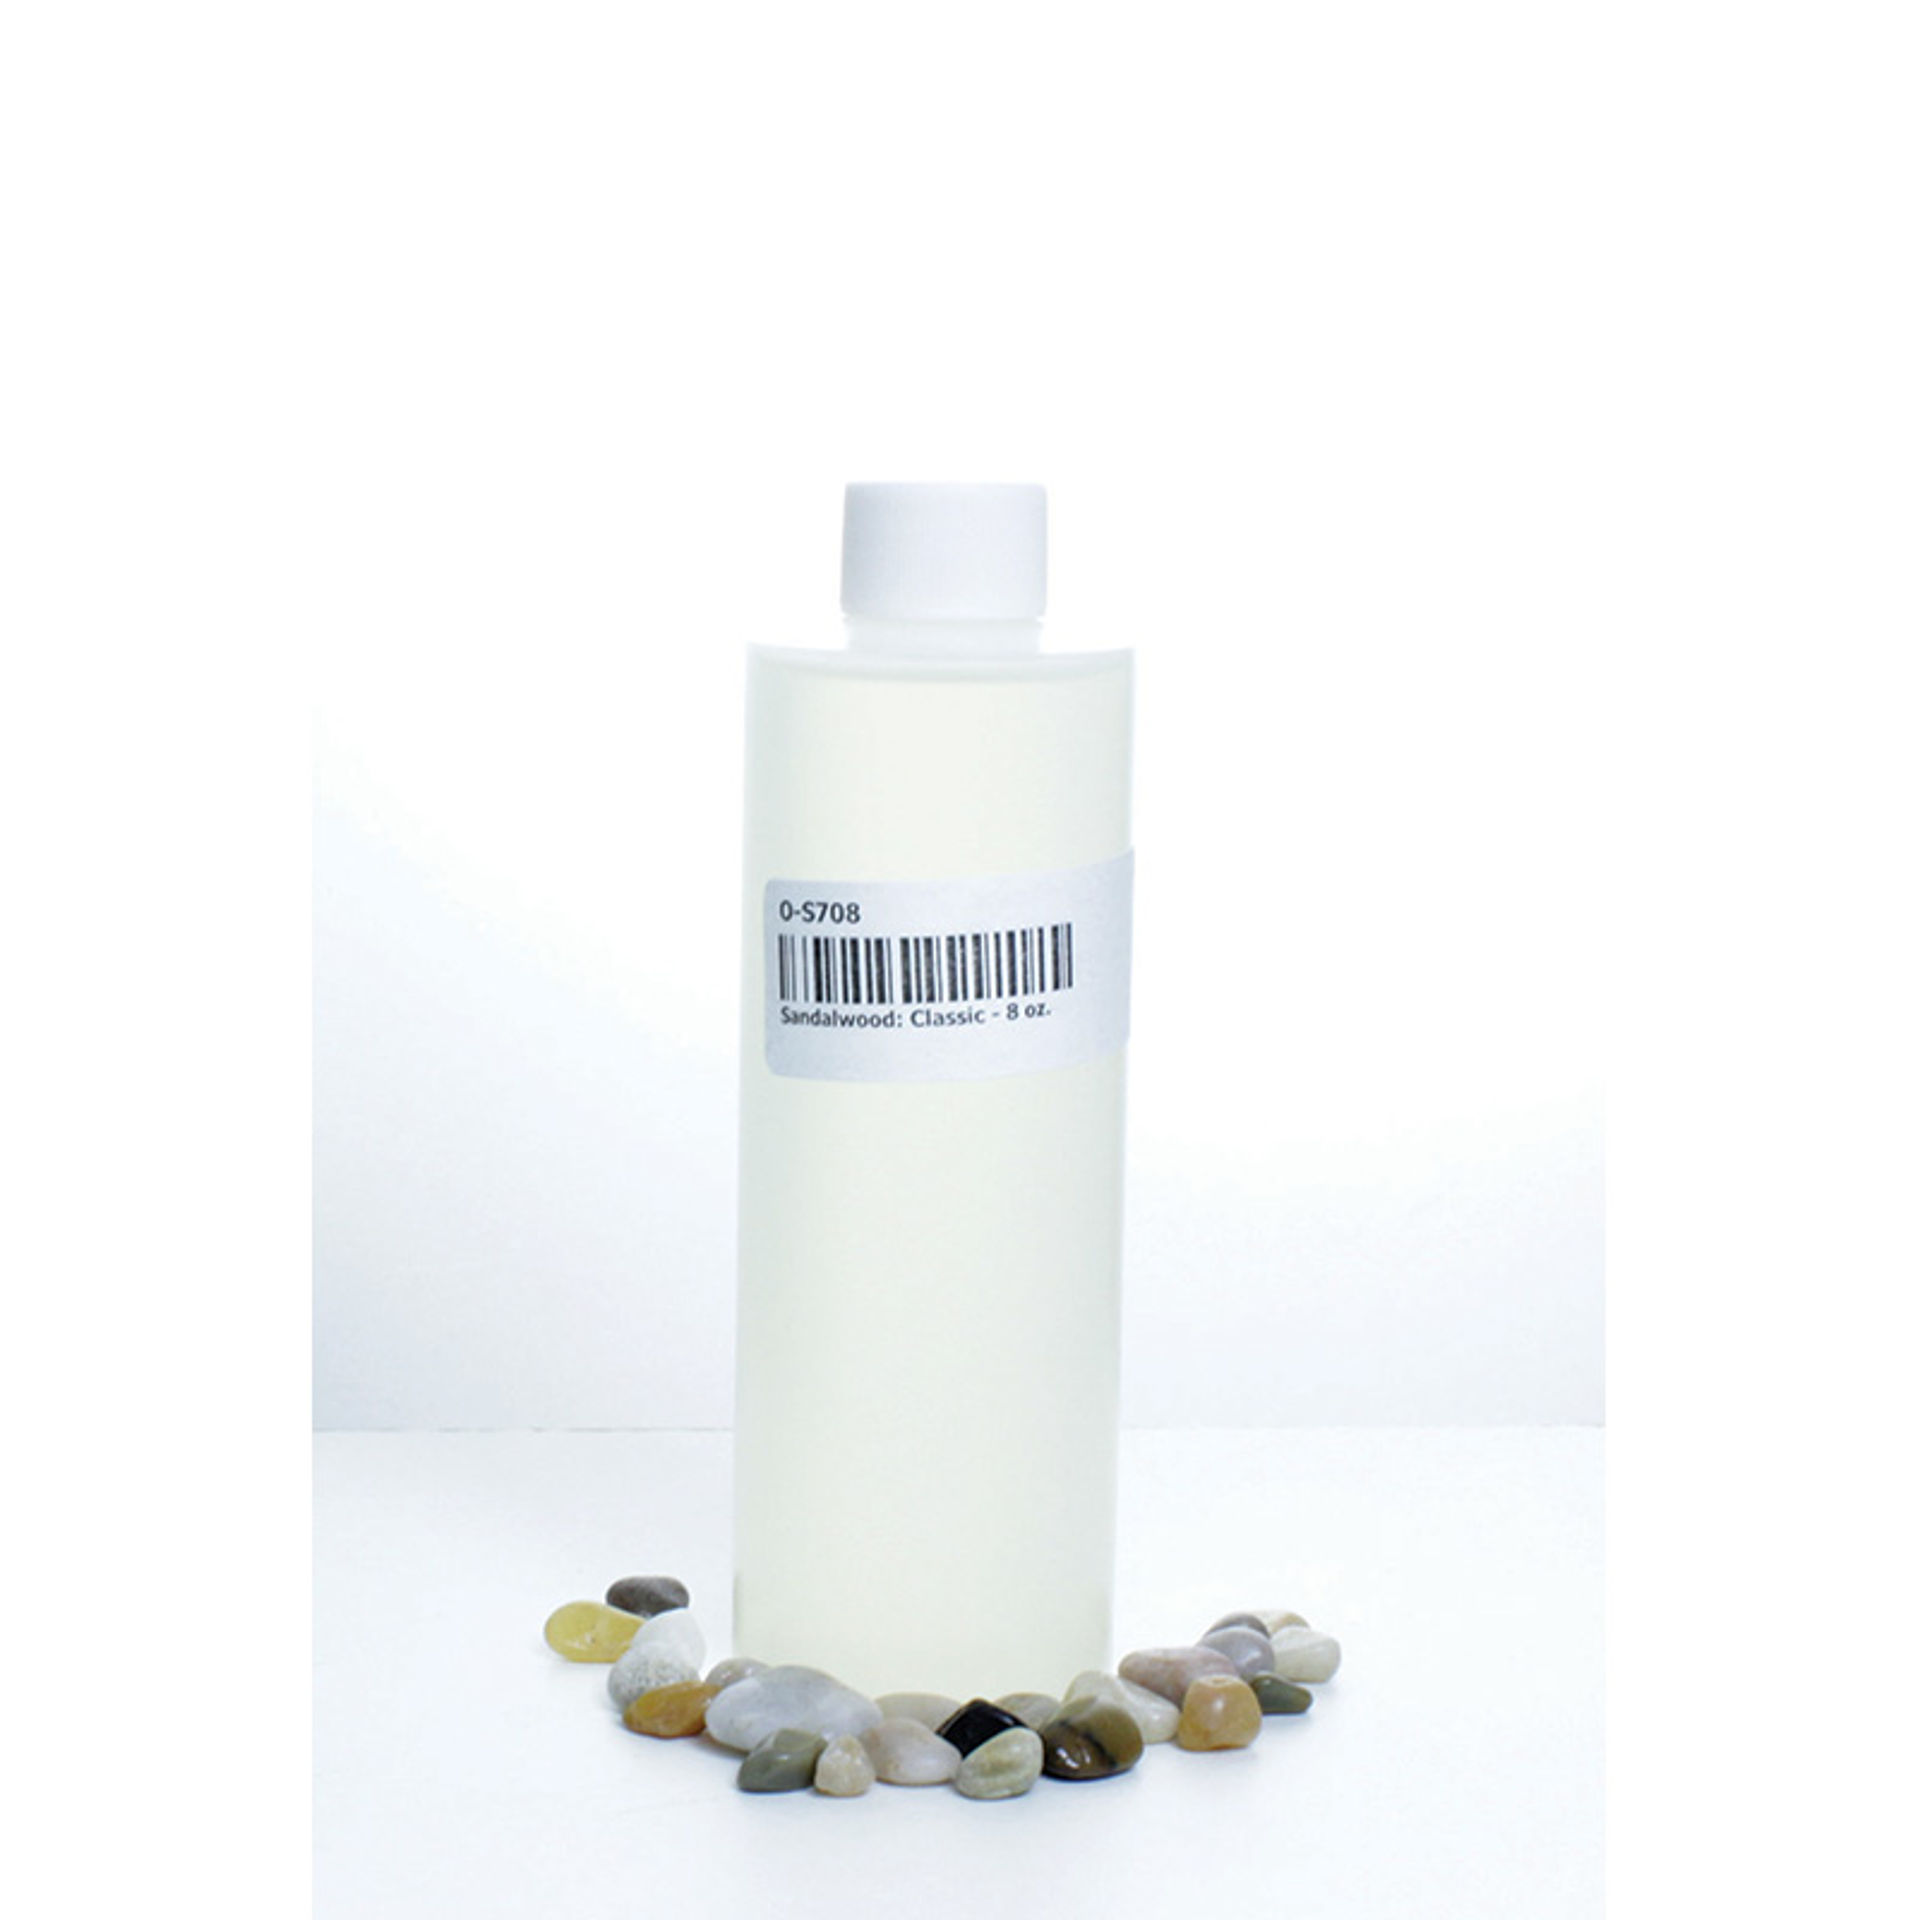 Picture of Sandalwood: Classic - 8 oz.